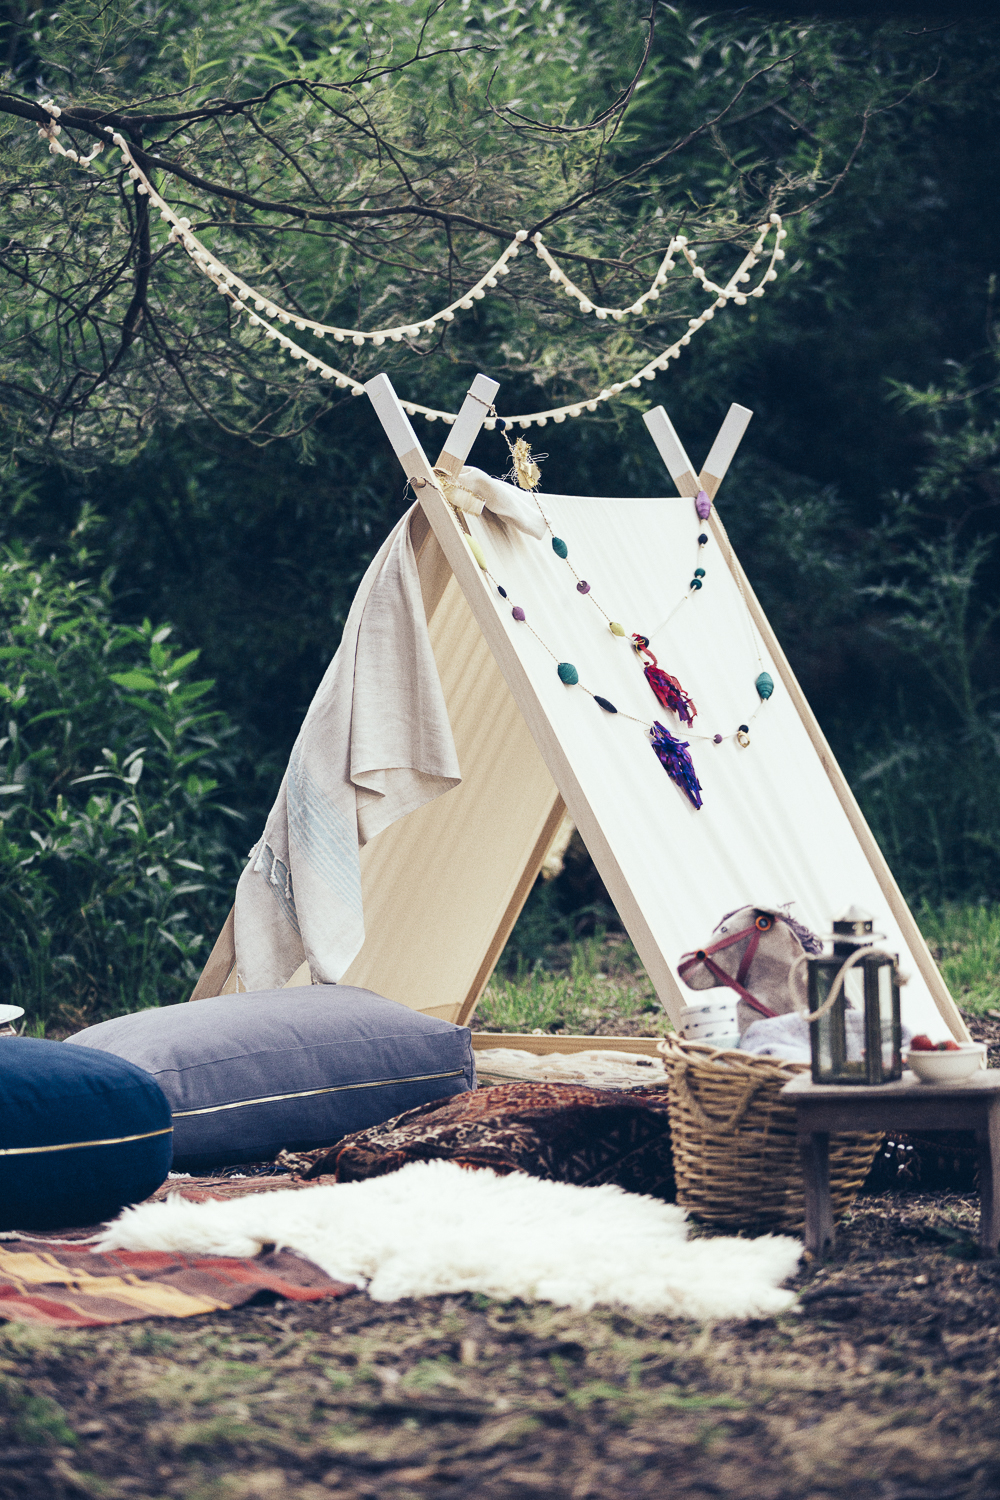 A Frame Tent by My Little Giggles as featured in Issue #2